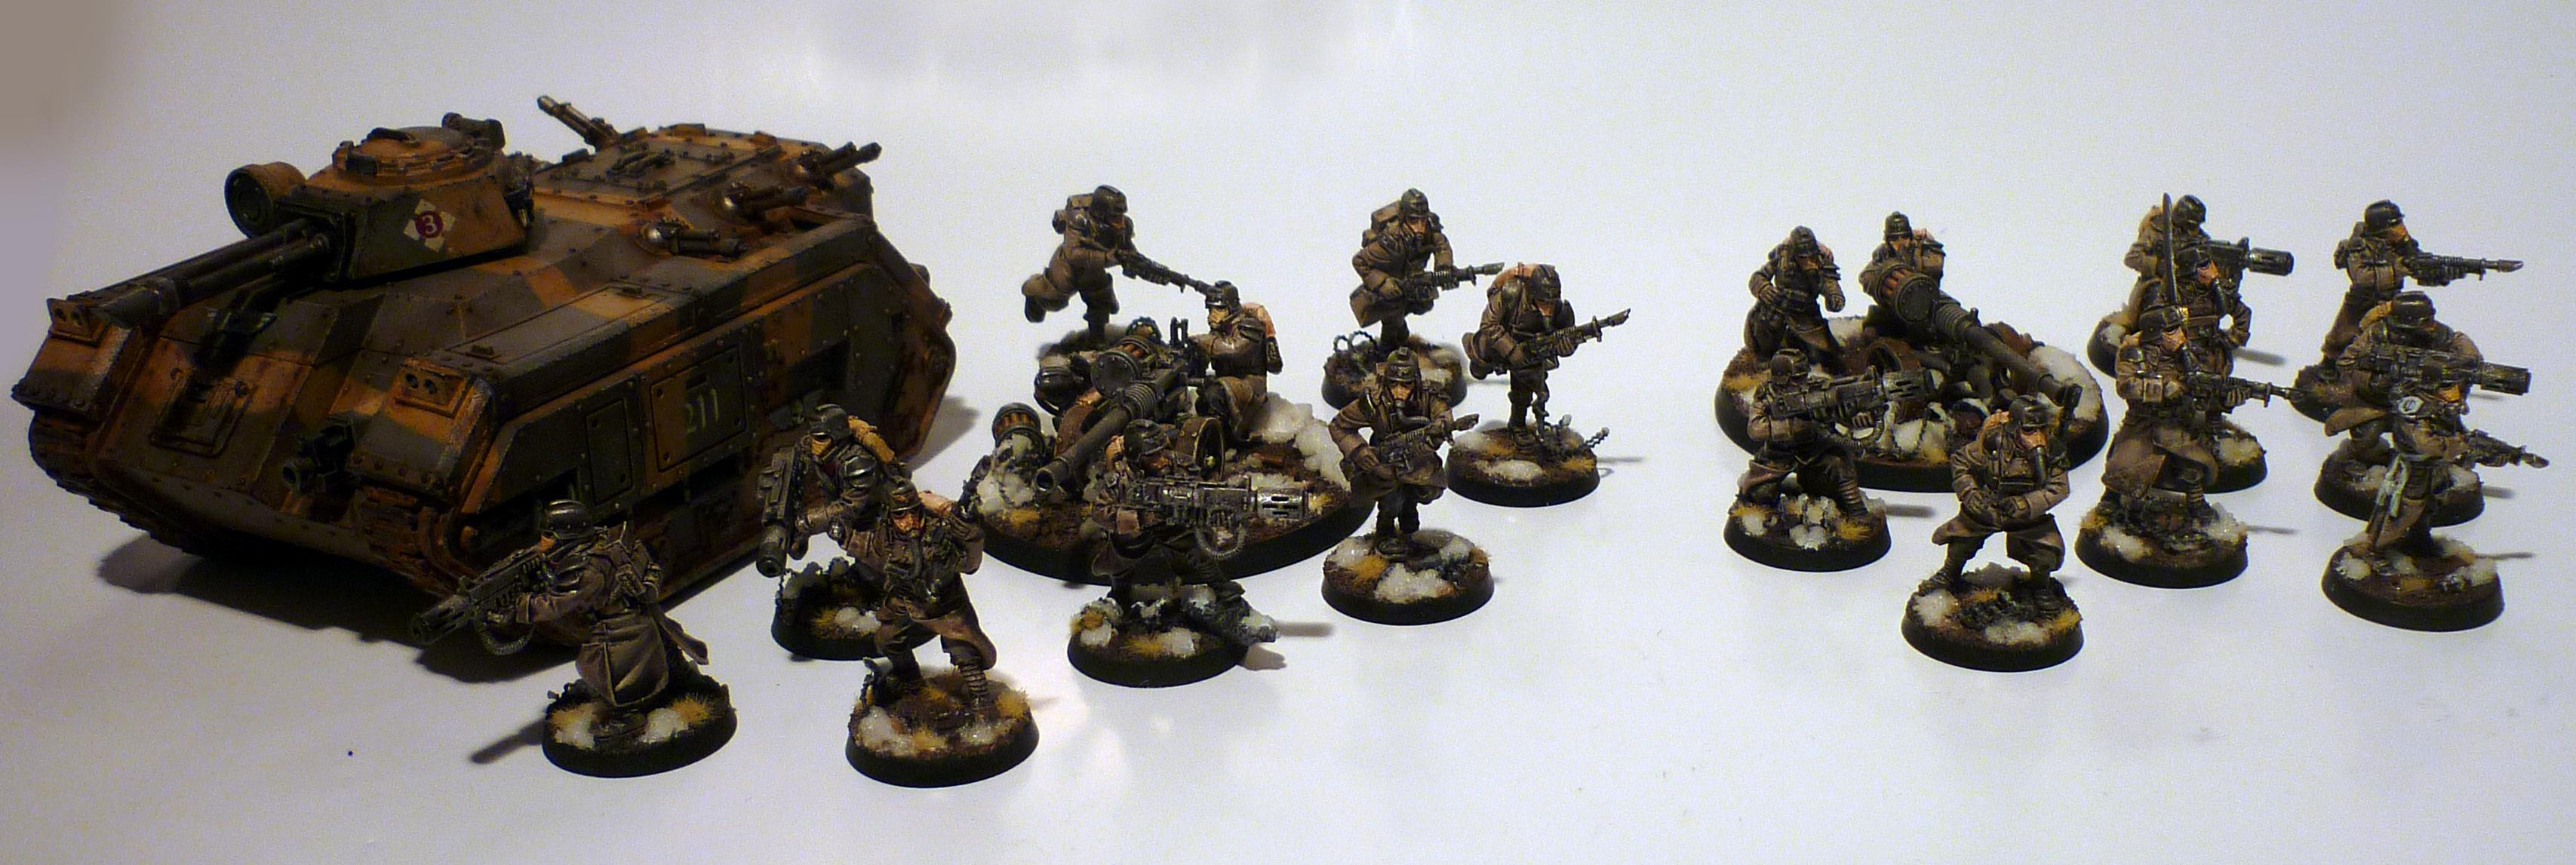 Krieg Guardsmen and Chimera